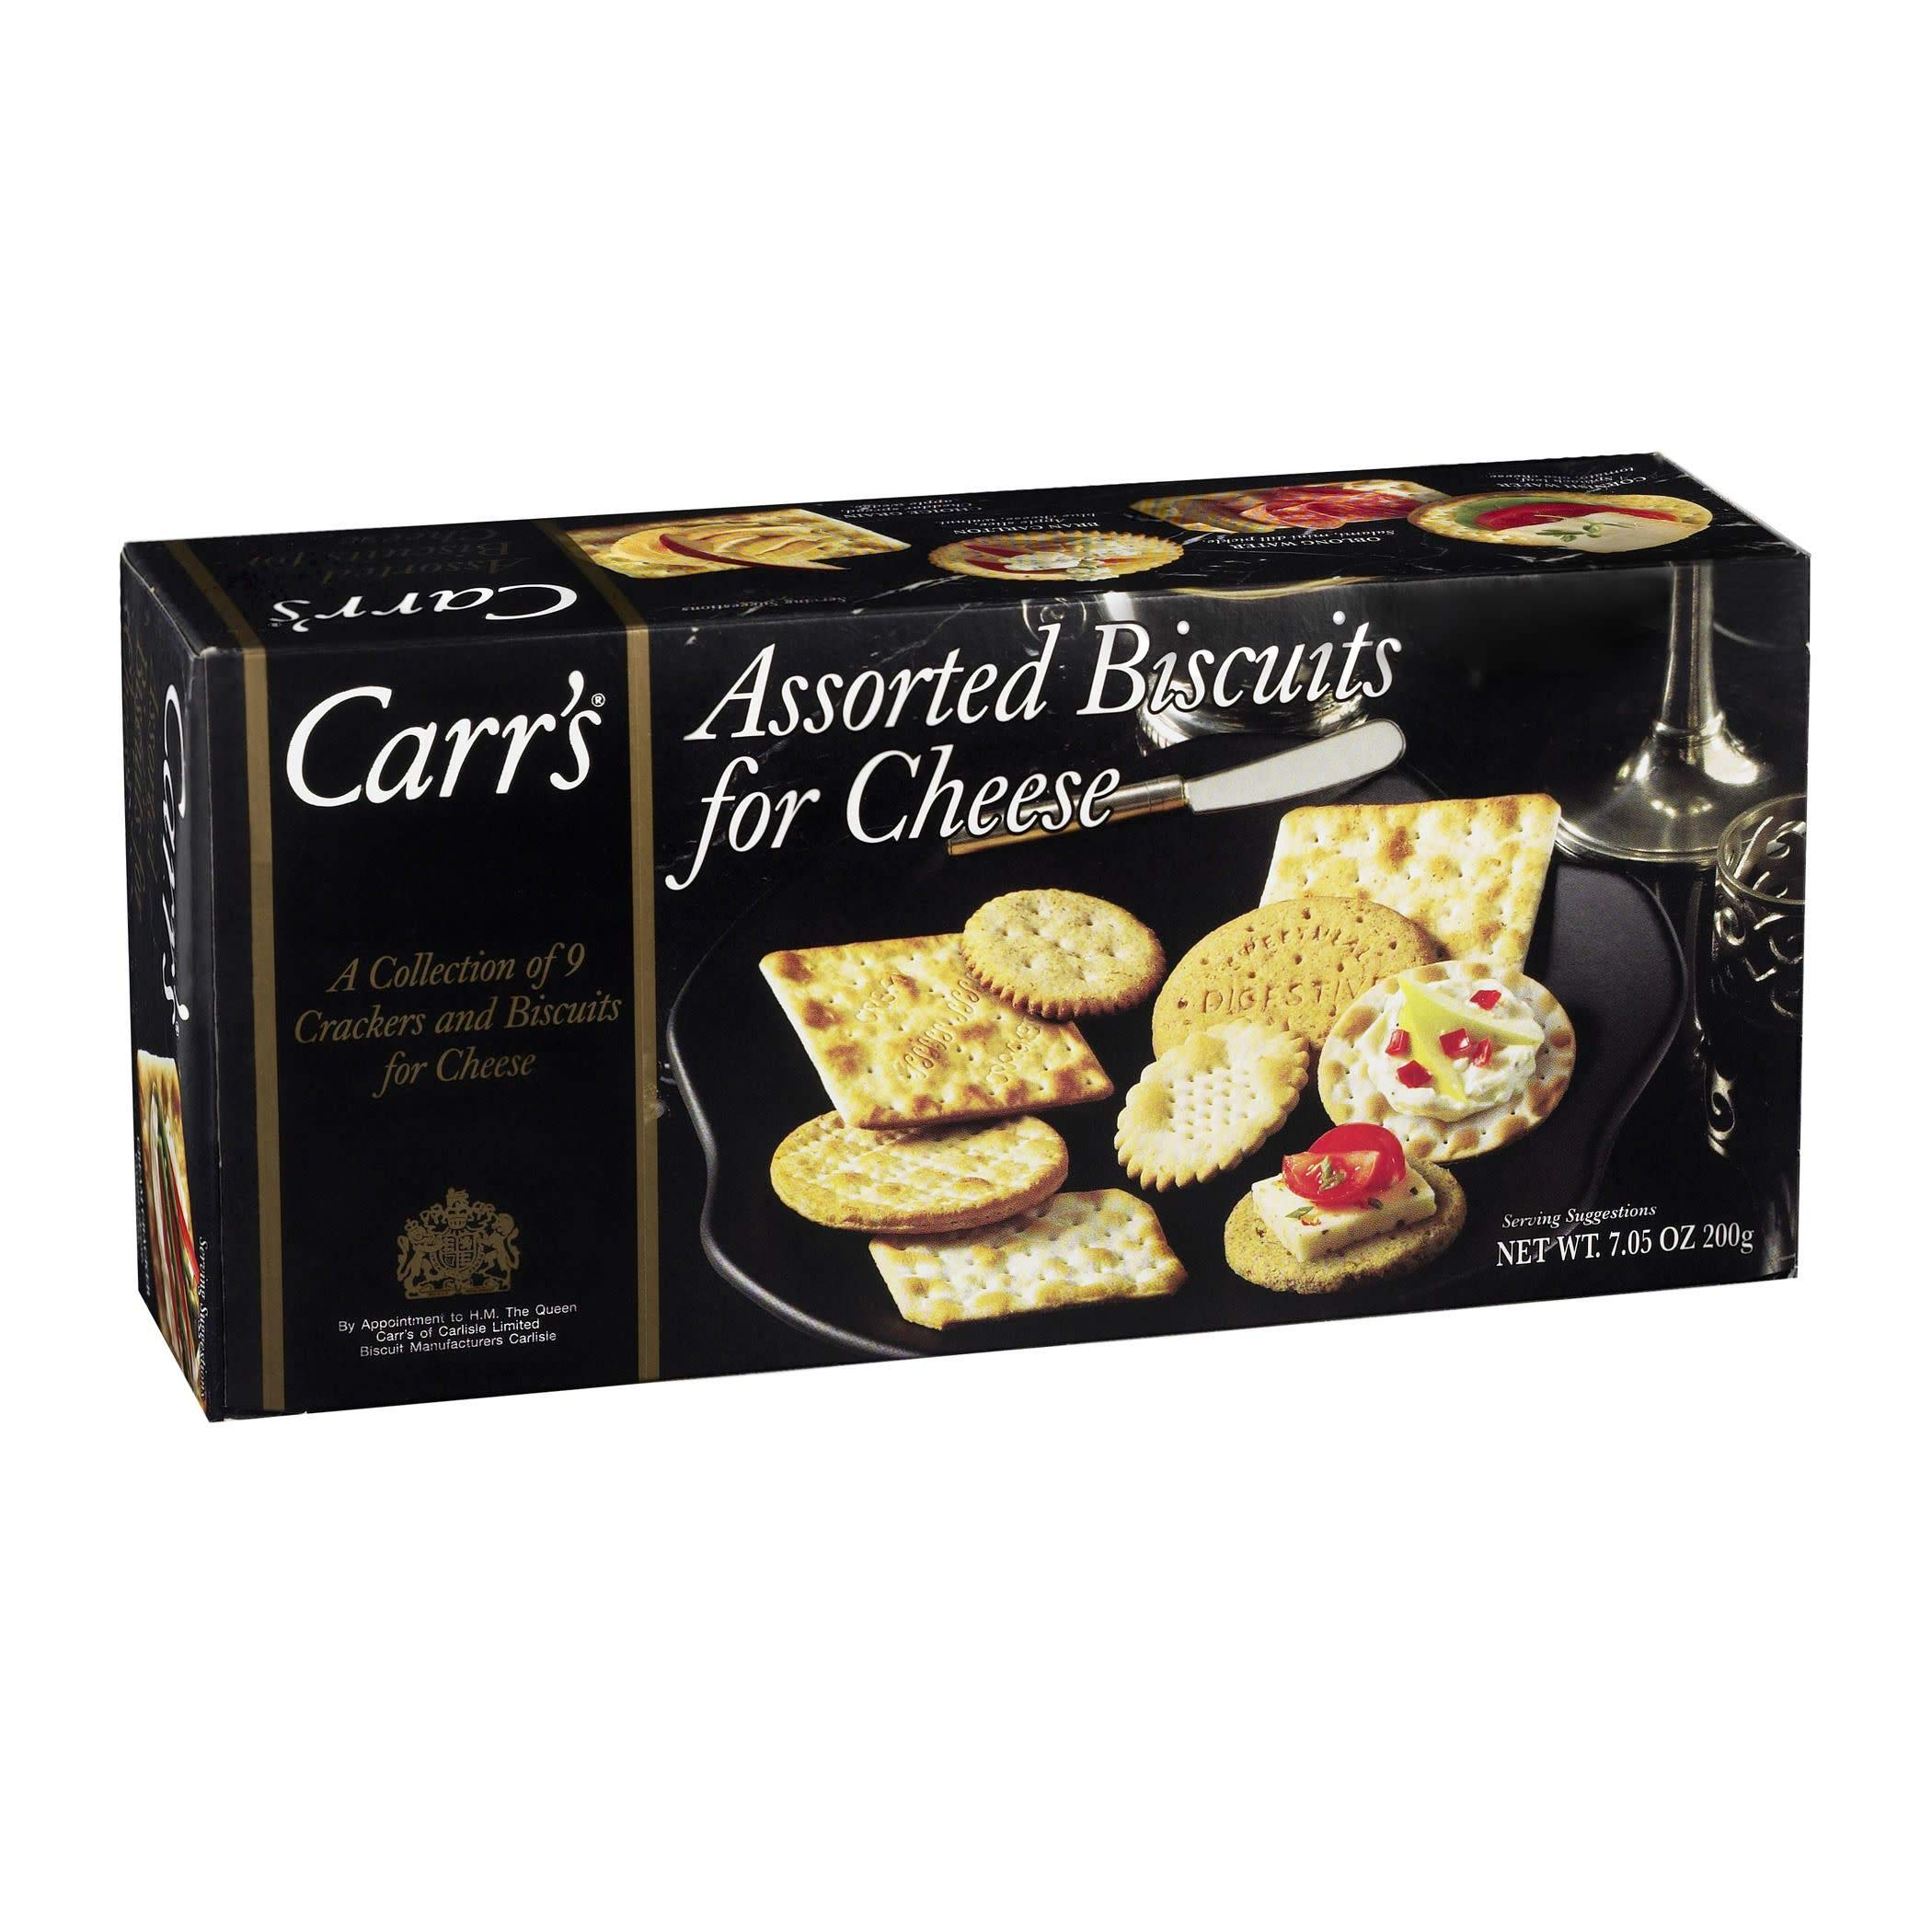 Carr's Assorted Biscuits for Cheese, Nine Varieties, 7.05-Ounce Boxes (Pack of 12) by Carr's (Image #1)